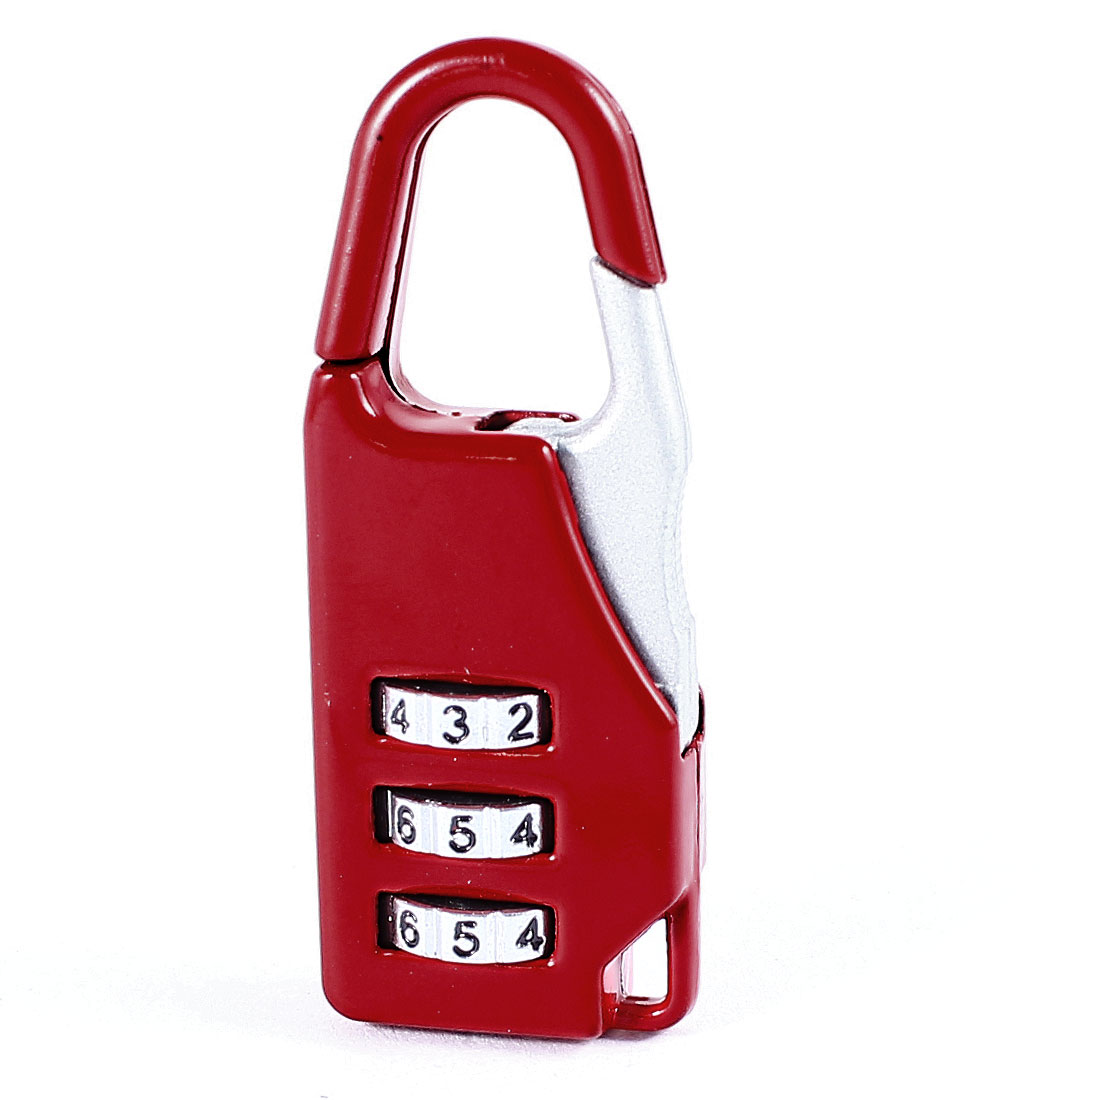 Red Metal Handbag Design 3 Digit Security Code Password Combination Lock